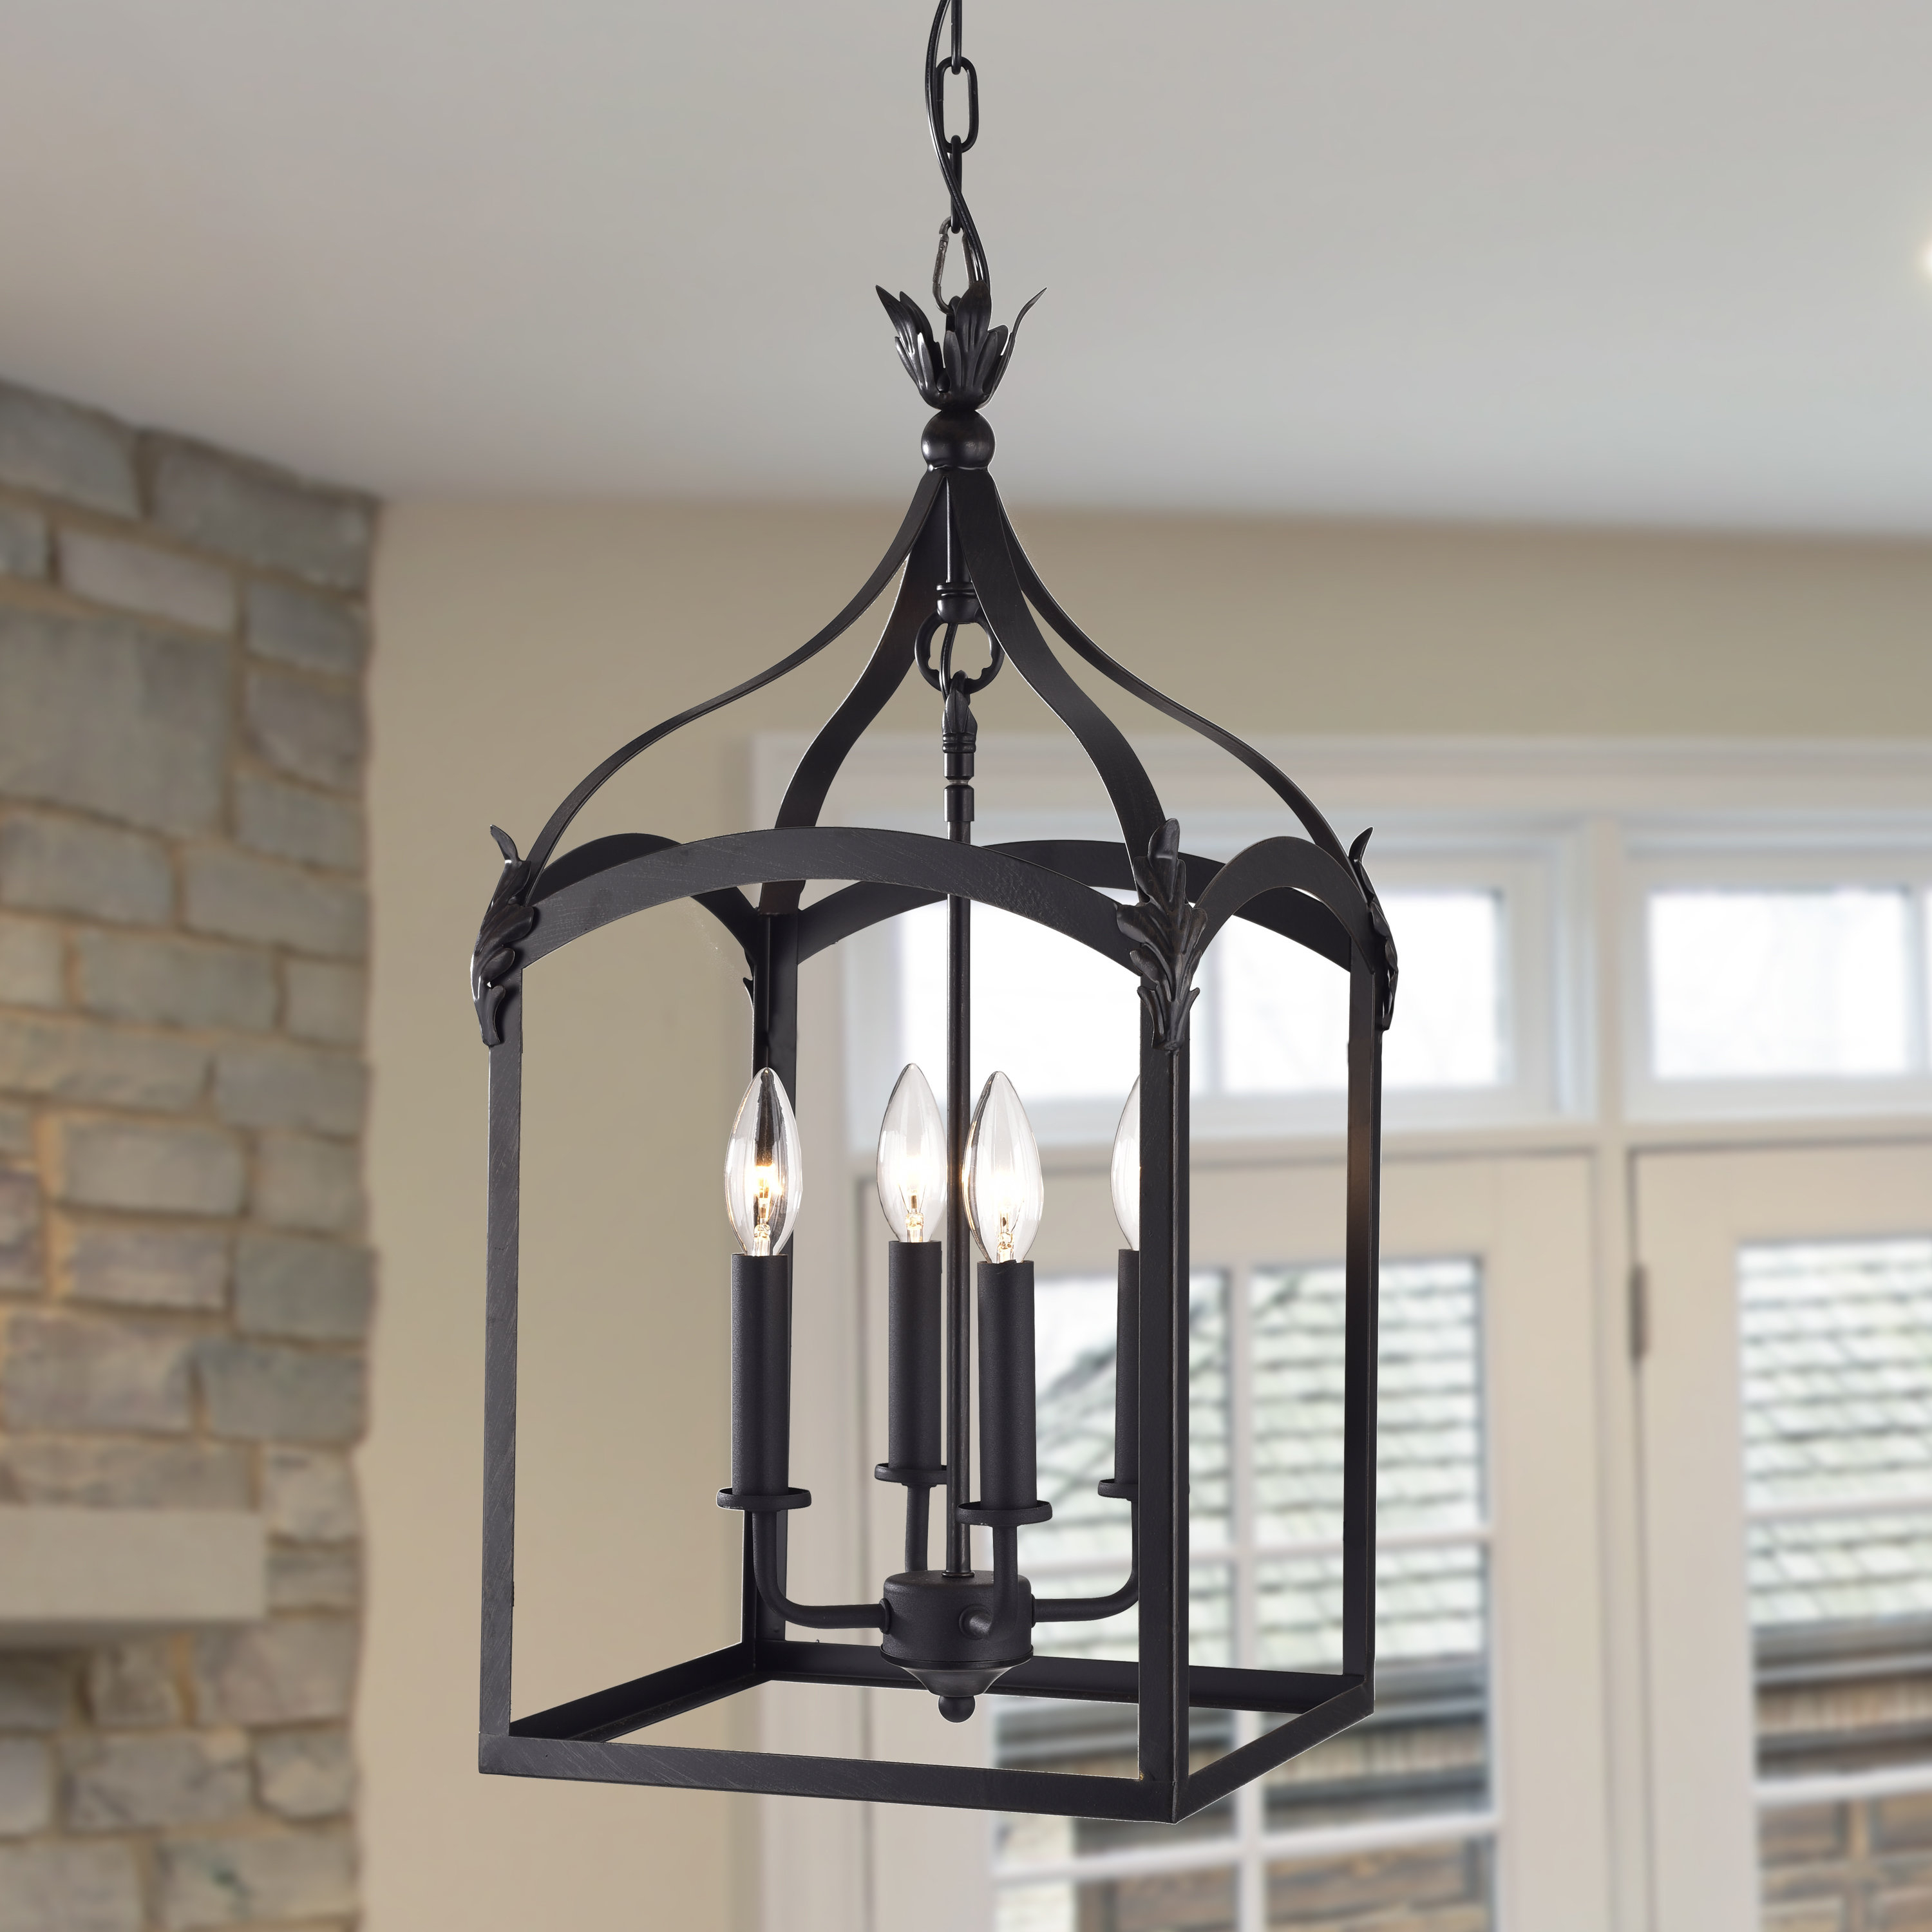 Newest Darby Home Co Forsyth 4 Light Lantern Geometric Pendant Intended For Armande 4 Light Lantern Drum Pendants (Gallery 20 of 20)